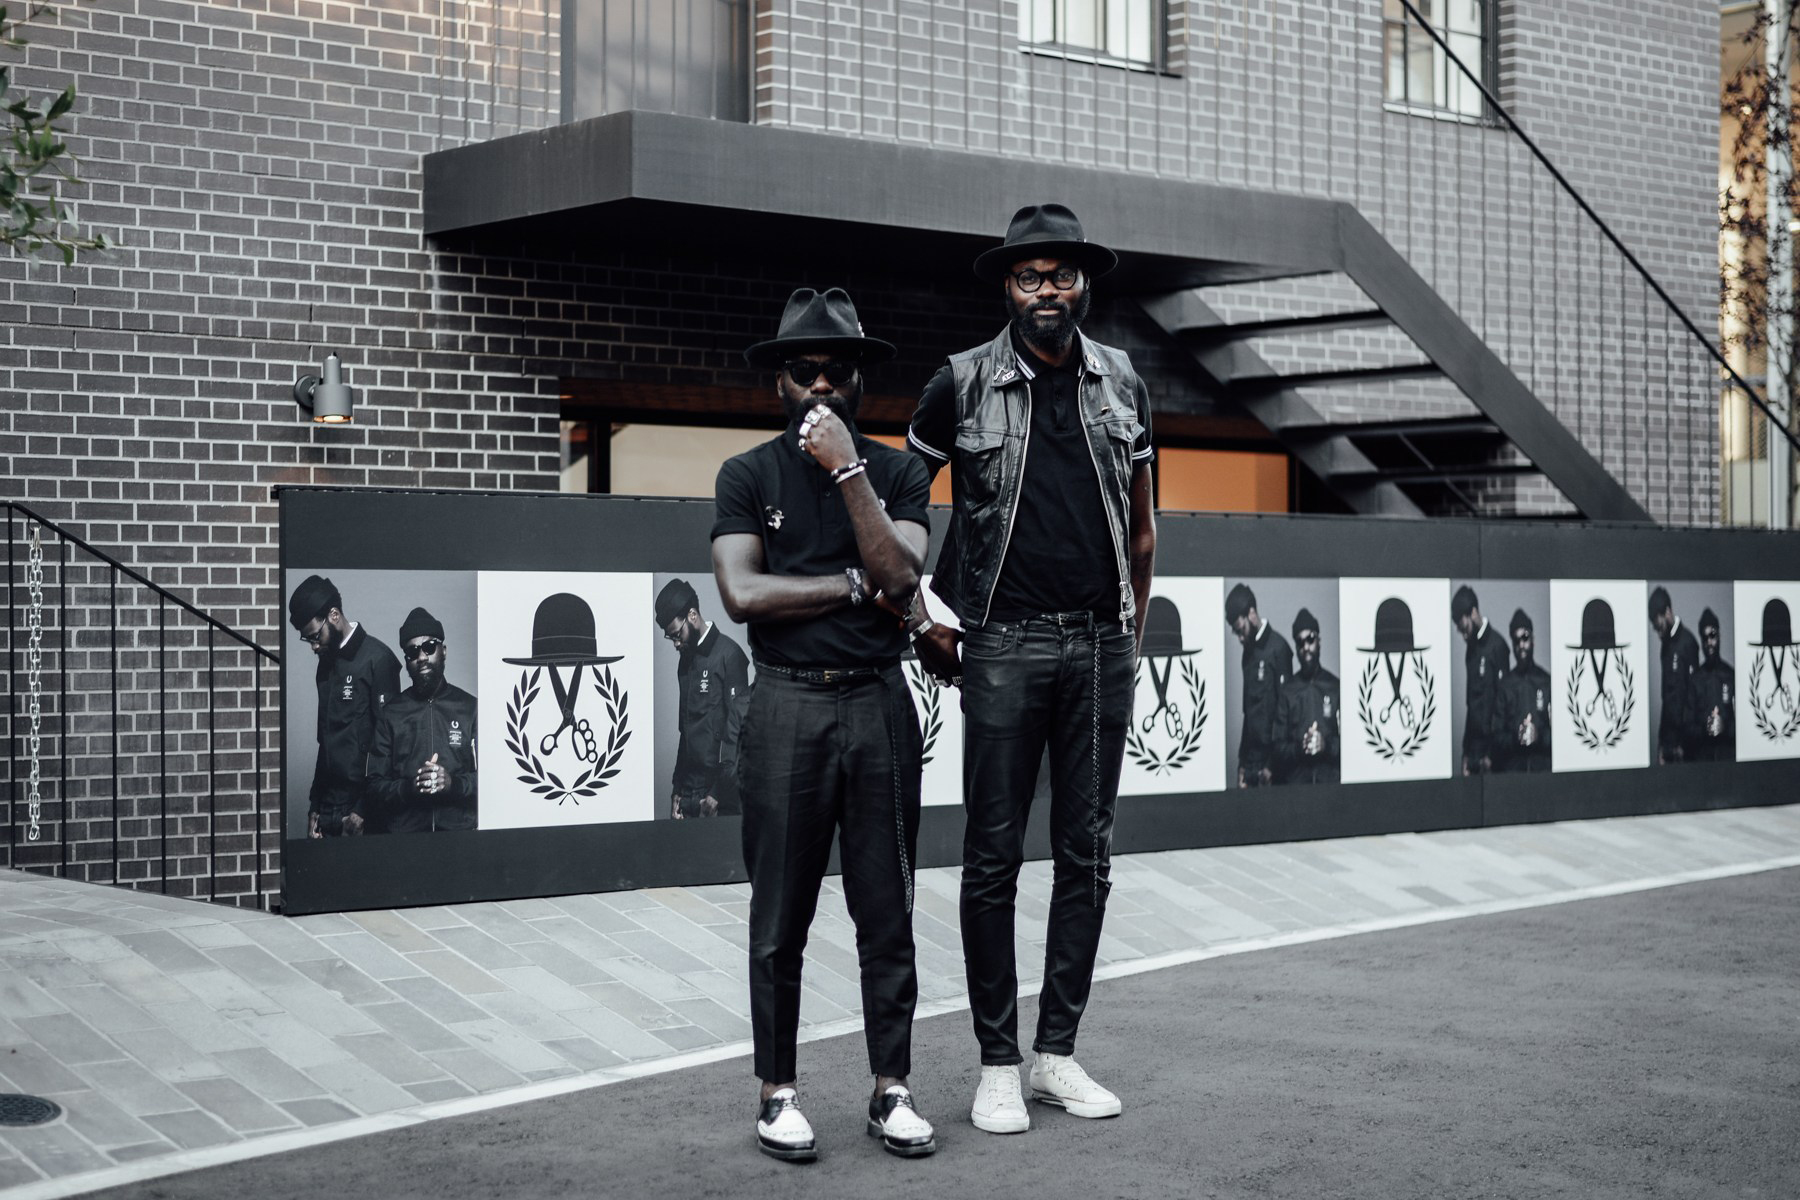 Streetsnaps: Art Comes First